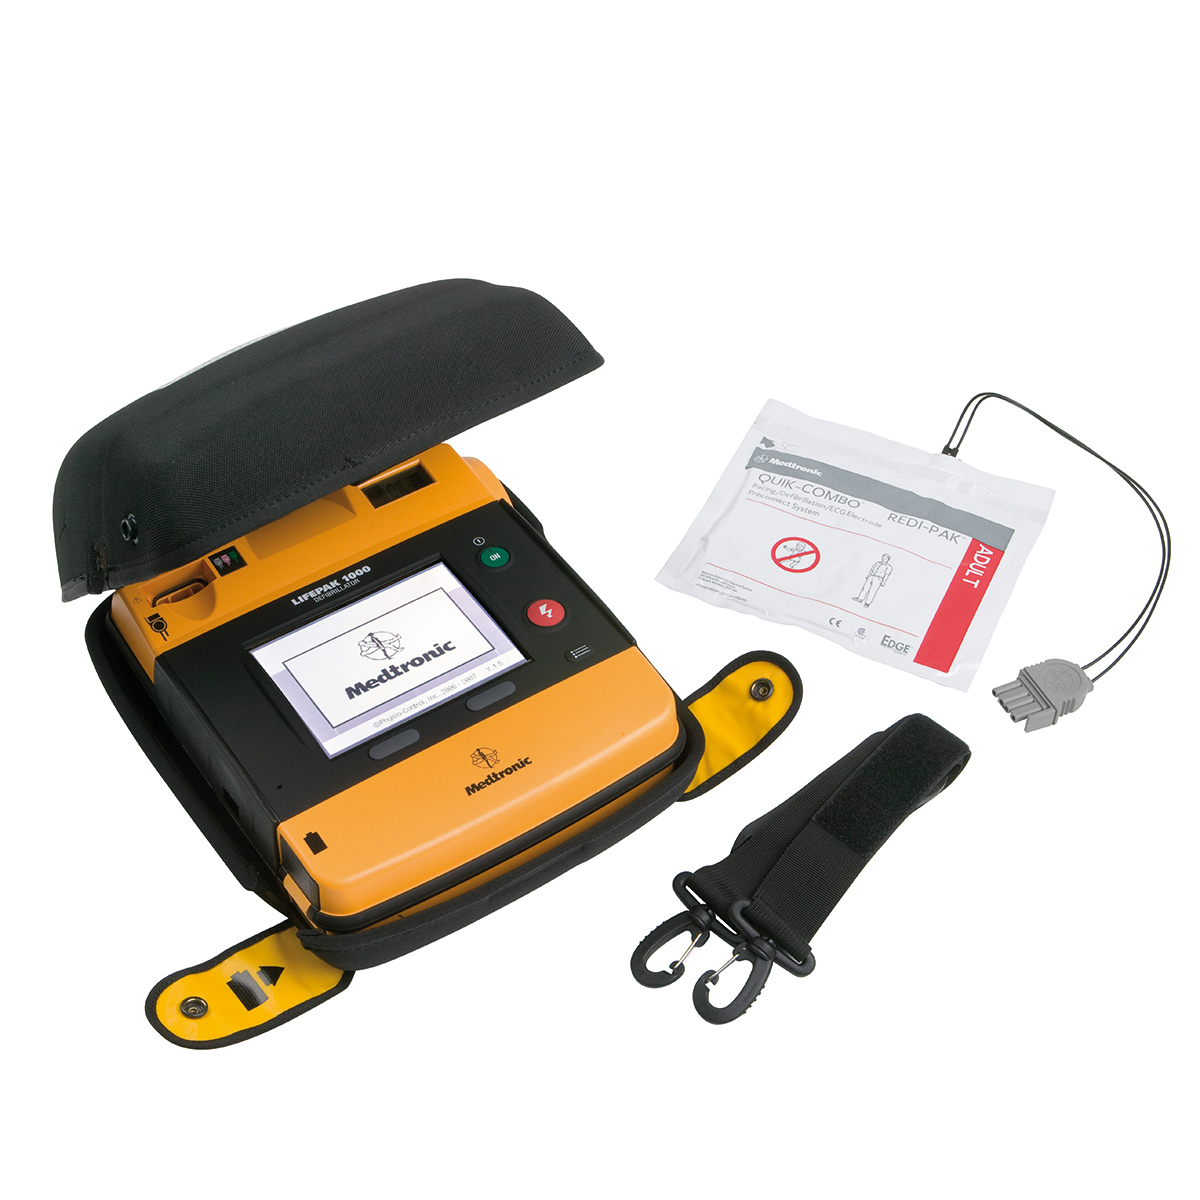 Physio-Control Lifepak® 1000 Semi-Automatic Defibrillator with ECG display and manual override